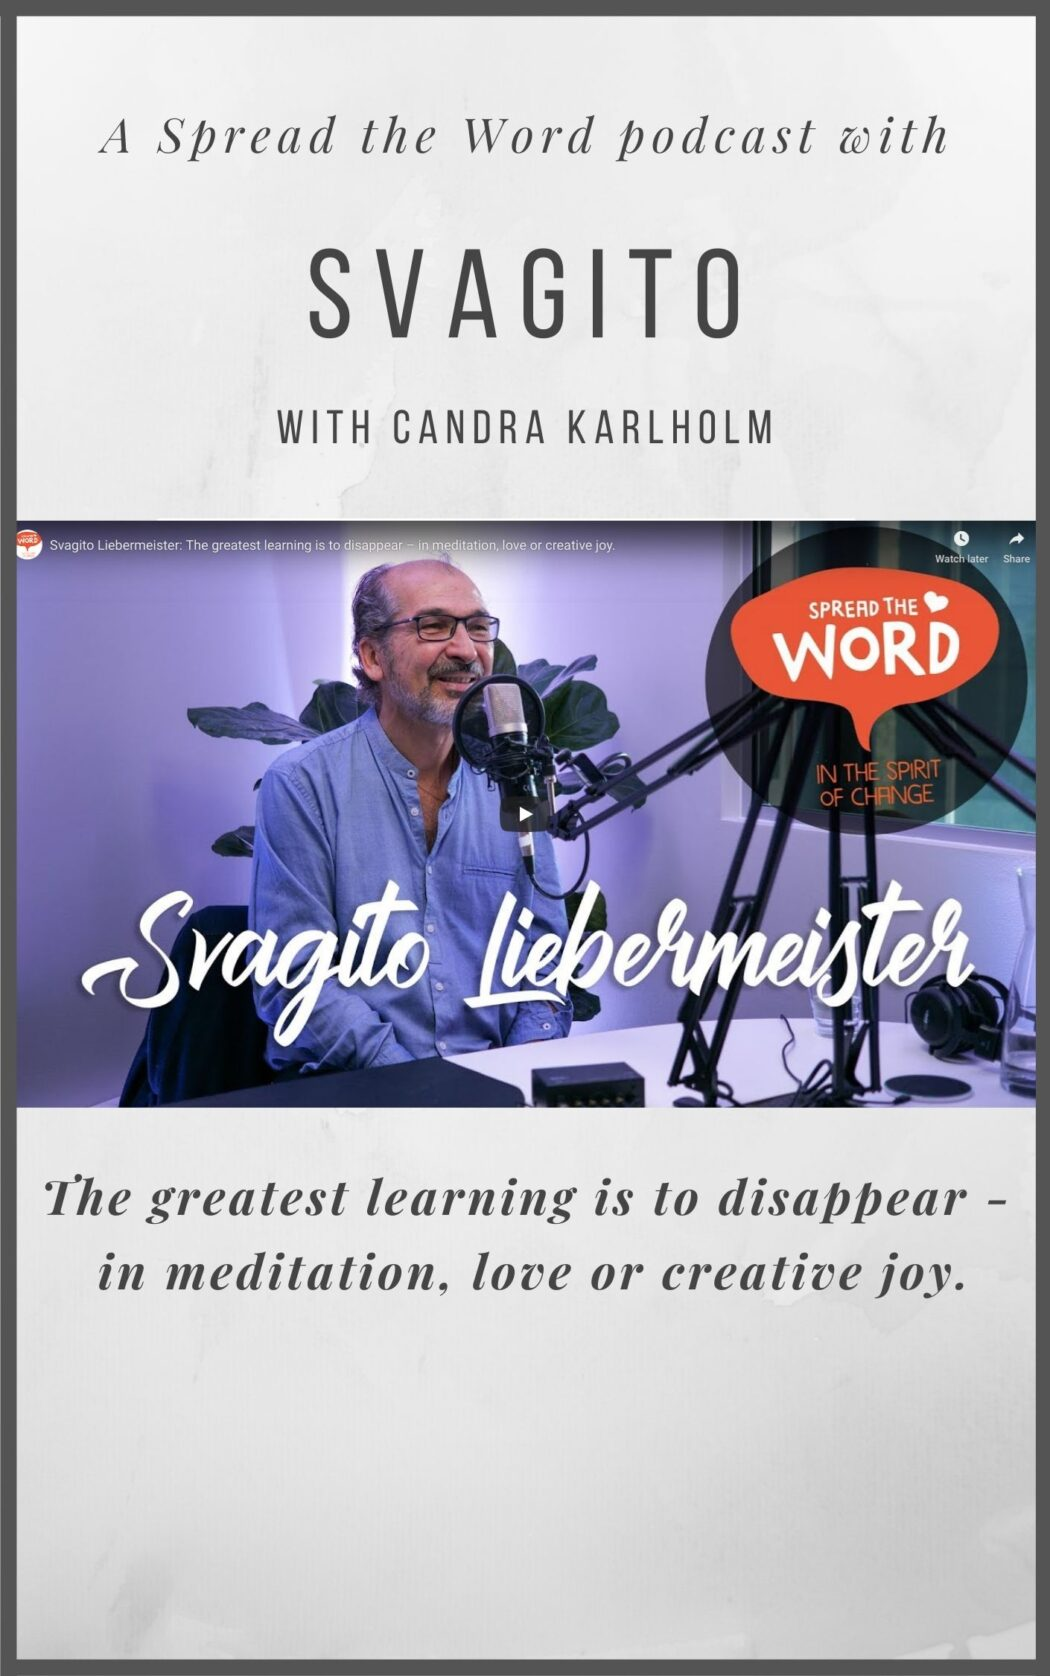 Svagito Liebermeister podcast Spread the Word